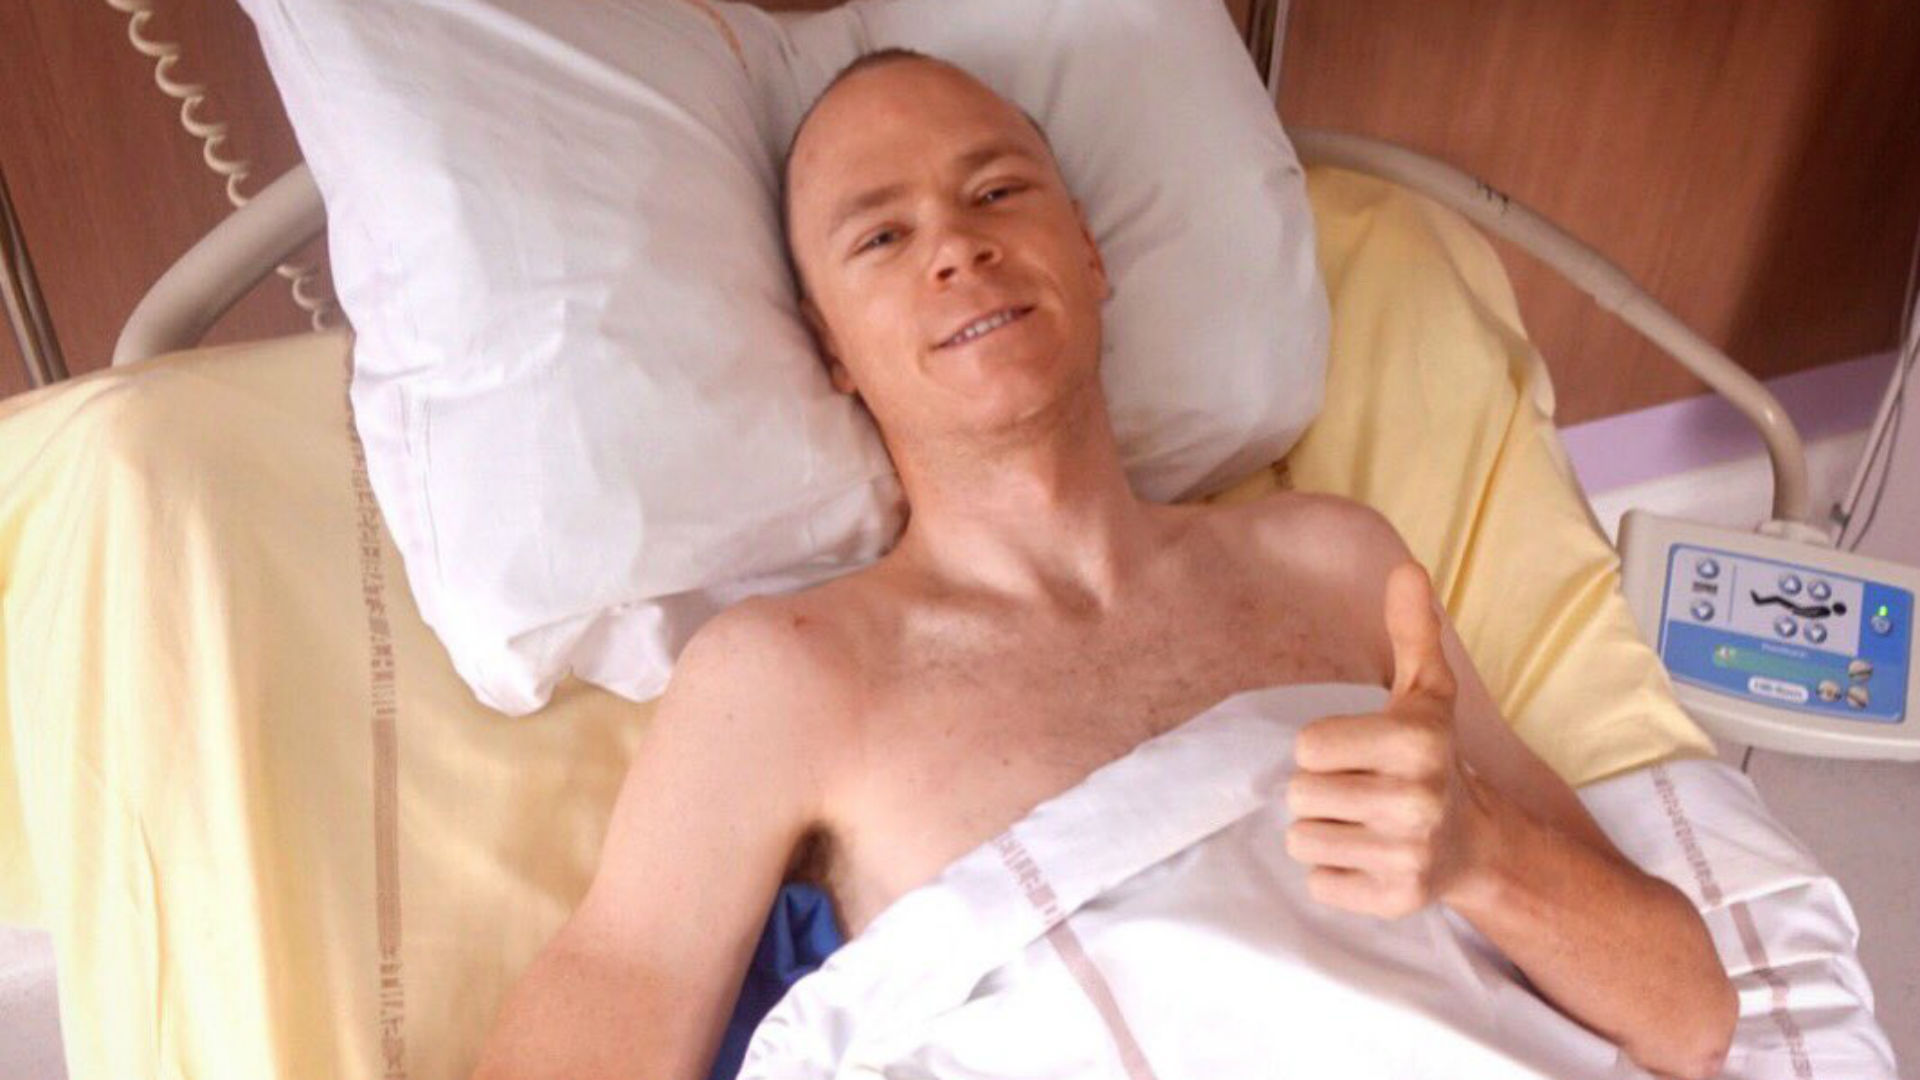 Just three days after a crash that left him requiring eight hours of surgery, Chris Froome is turning his attention to a full recovery.